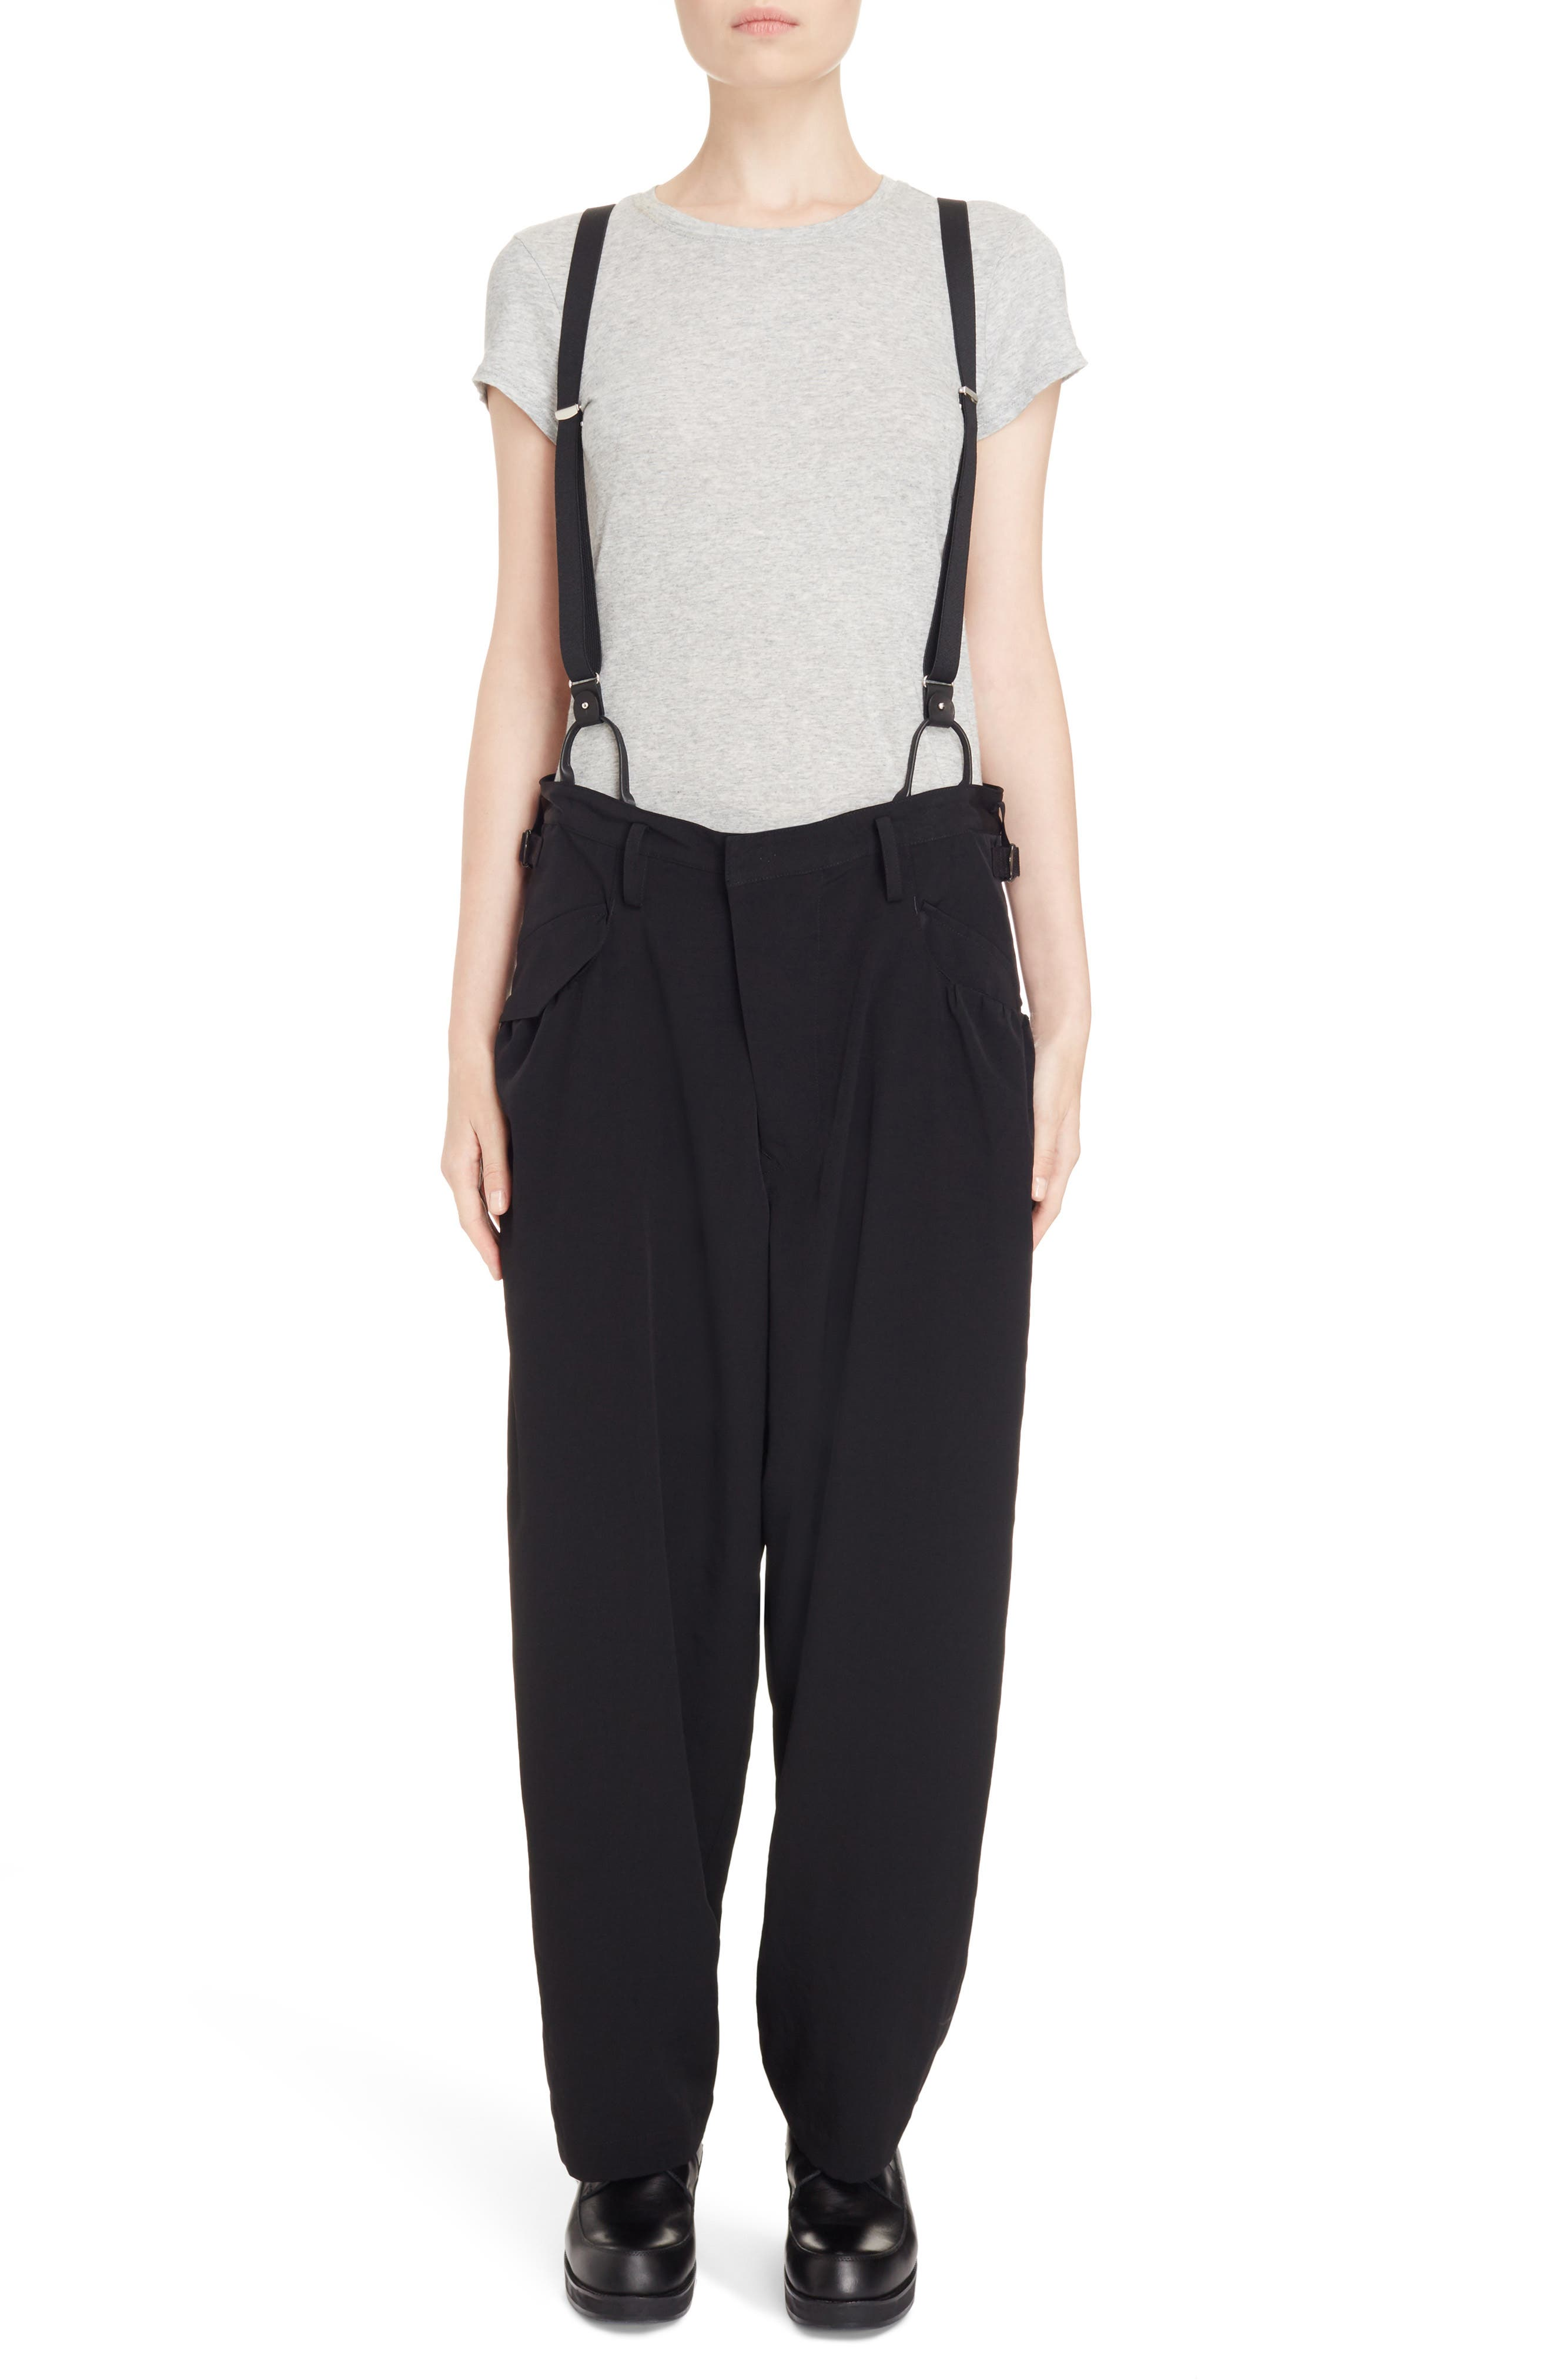 Pants with Suspenders,                         Main,                         color, Black